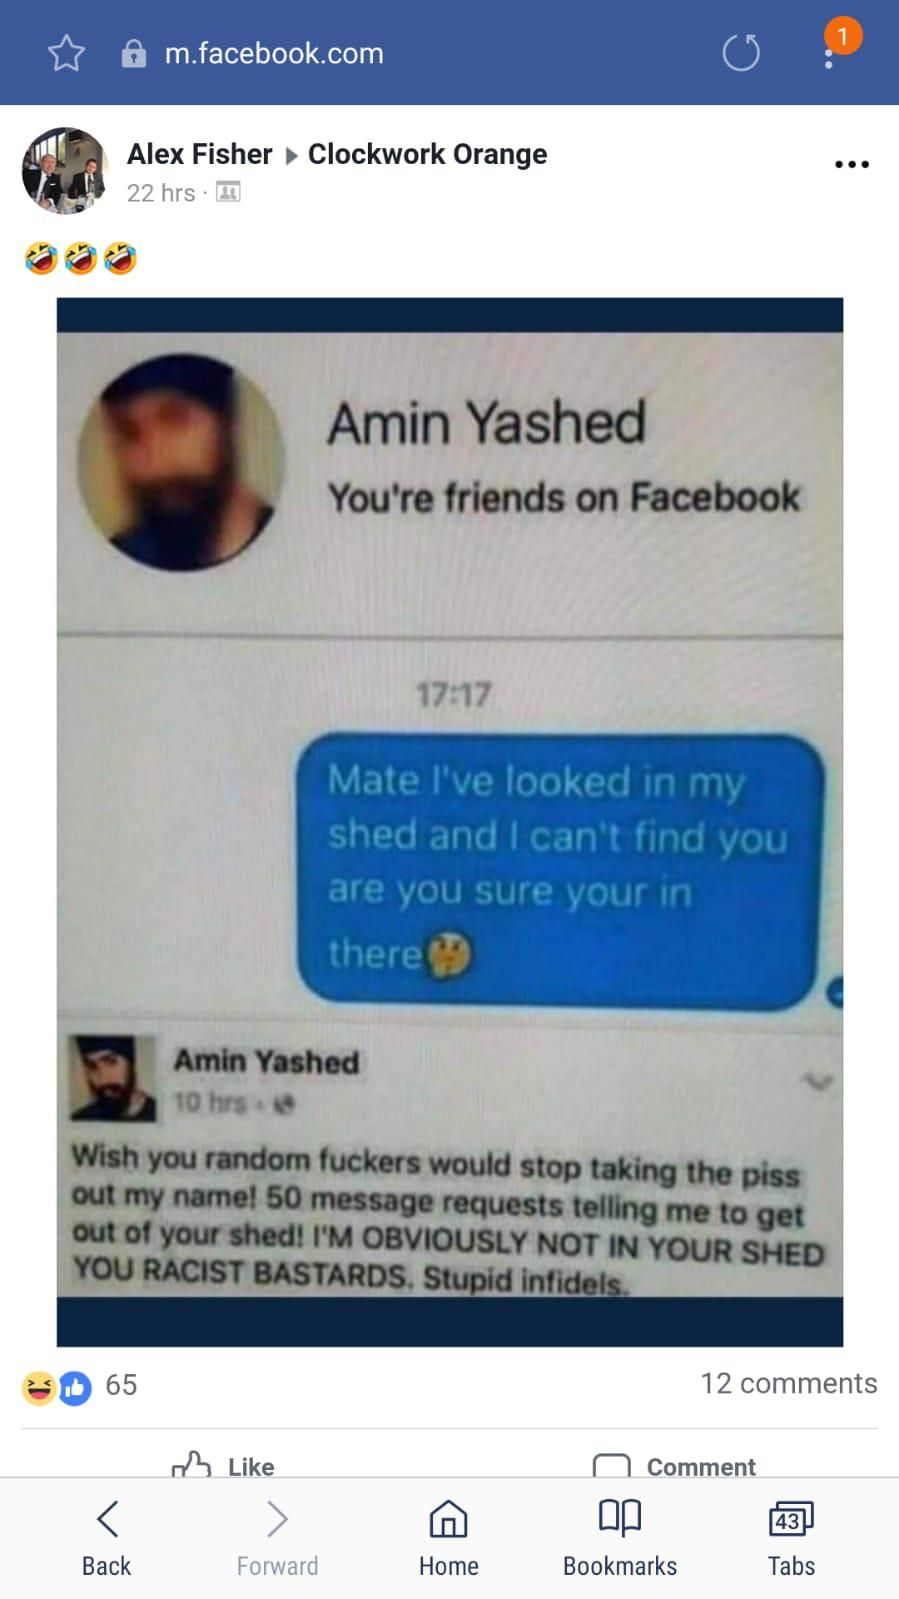 Amin Yashed - What a name